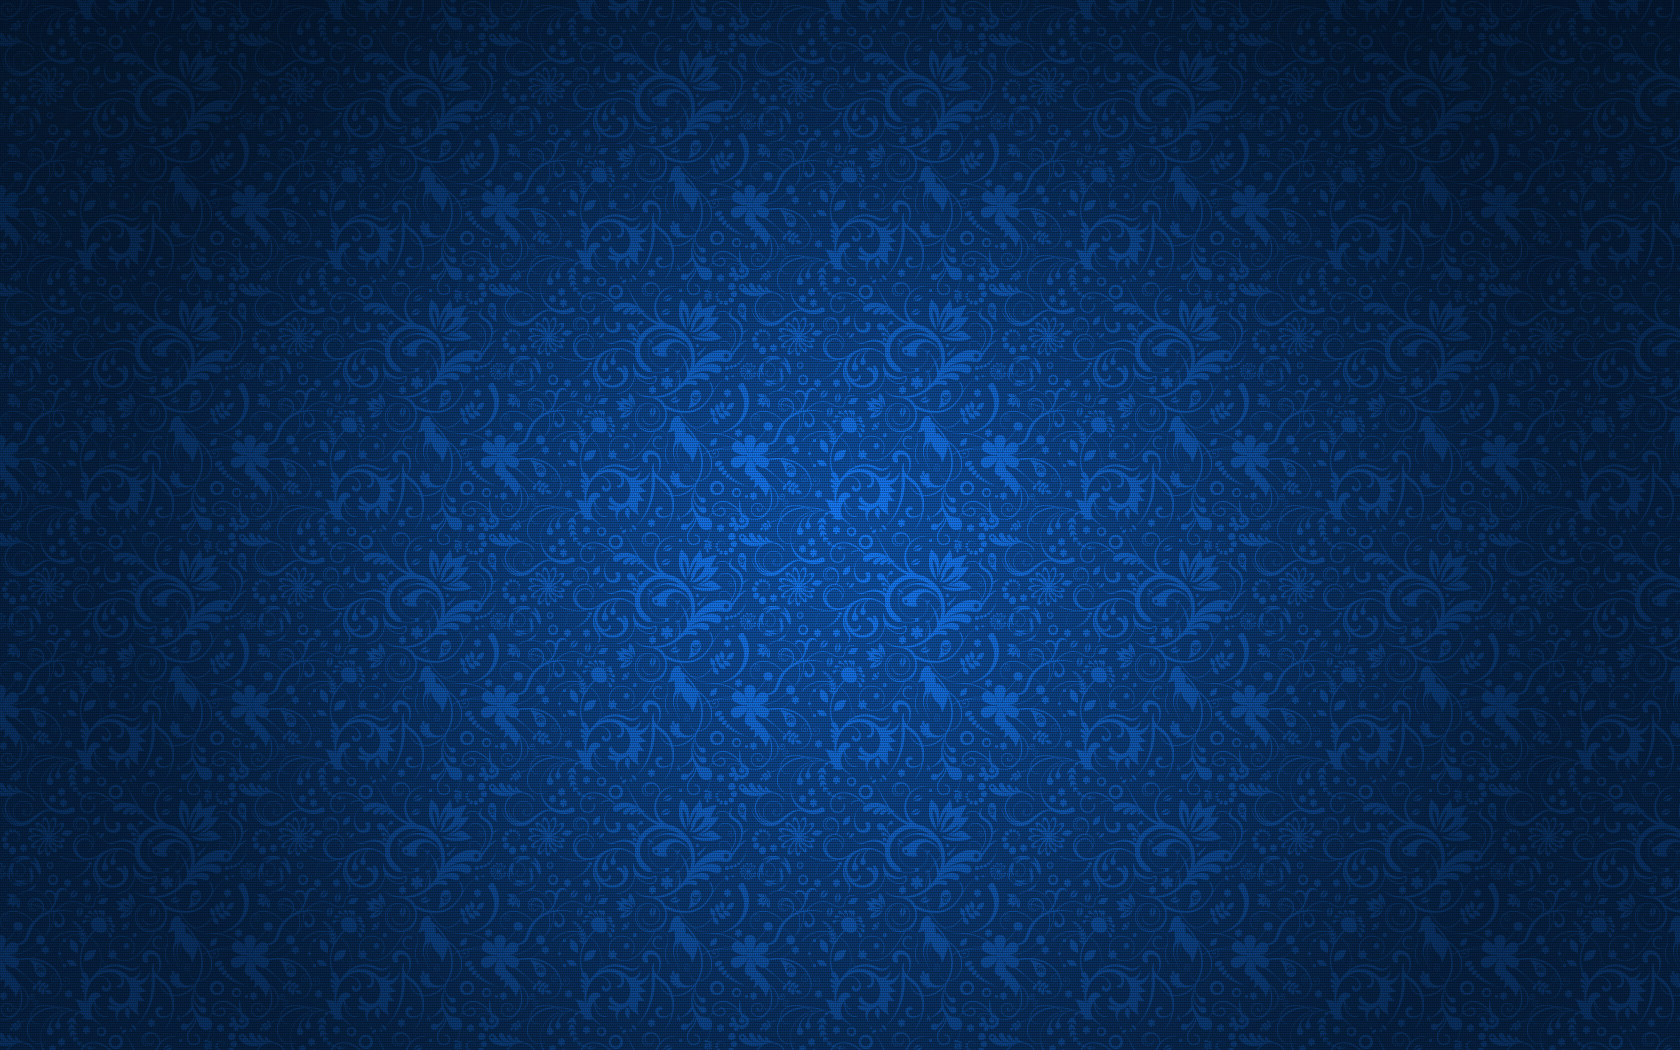 Blue Wallpaper_midnight blue